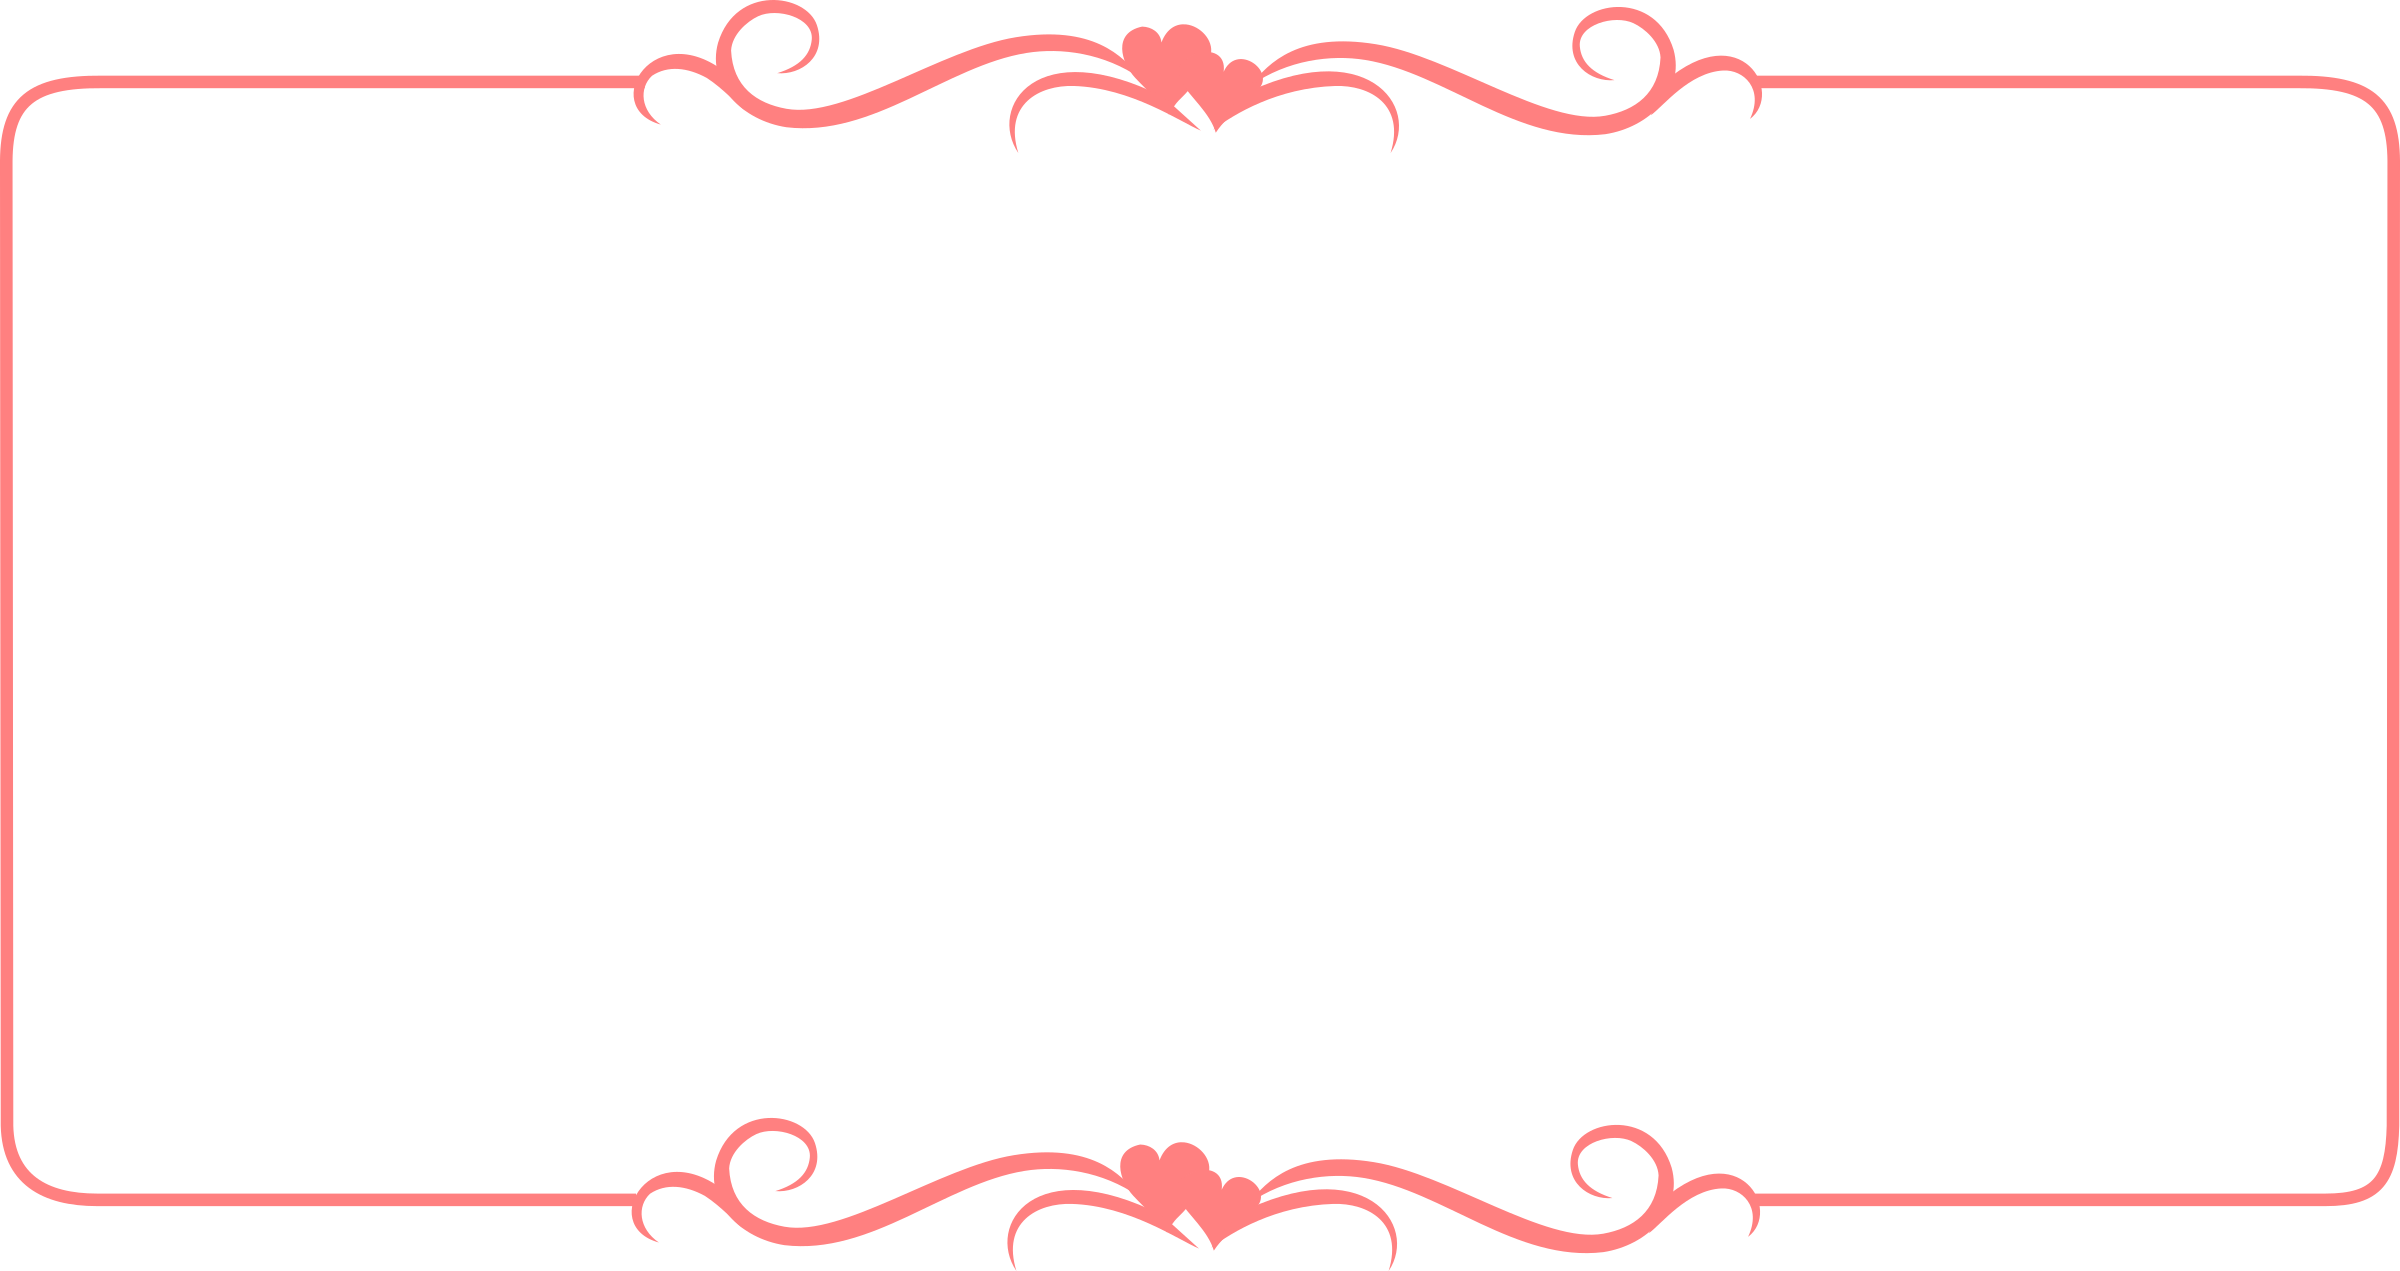 Pink heart clipart border graphic freeuse Clipart - Hearts Border Template graphic freeuse